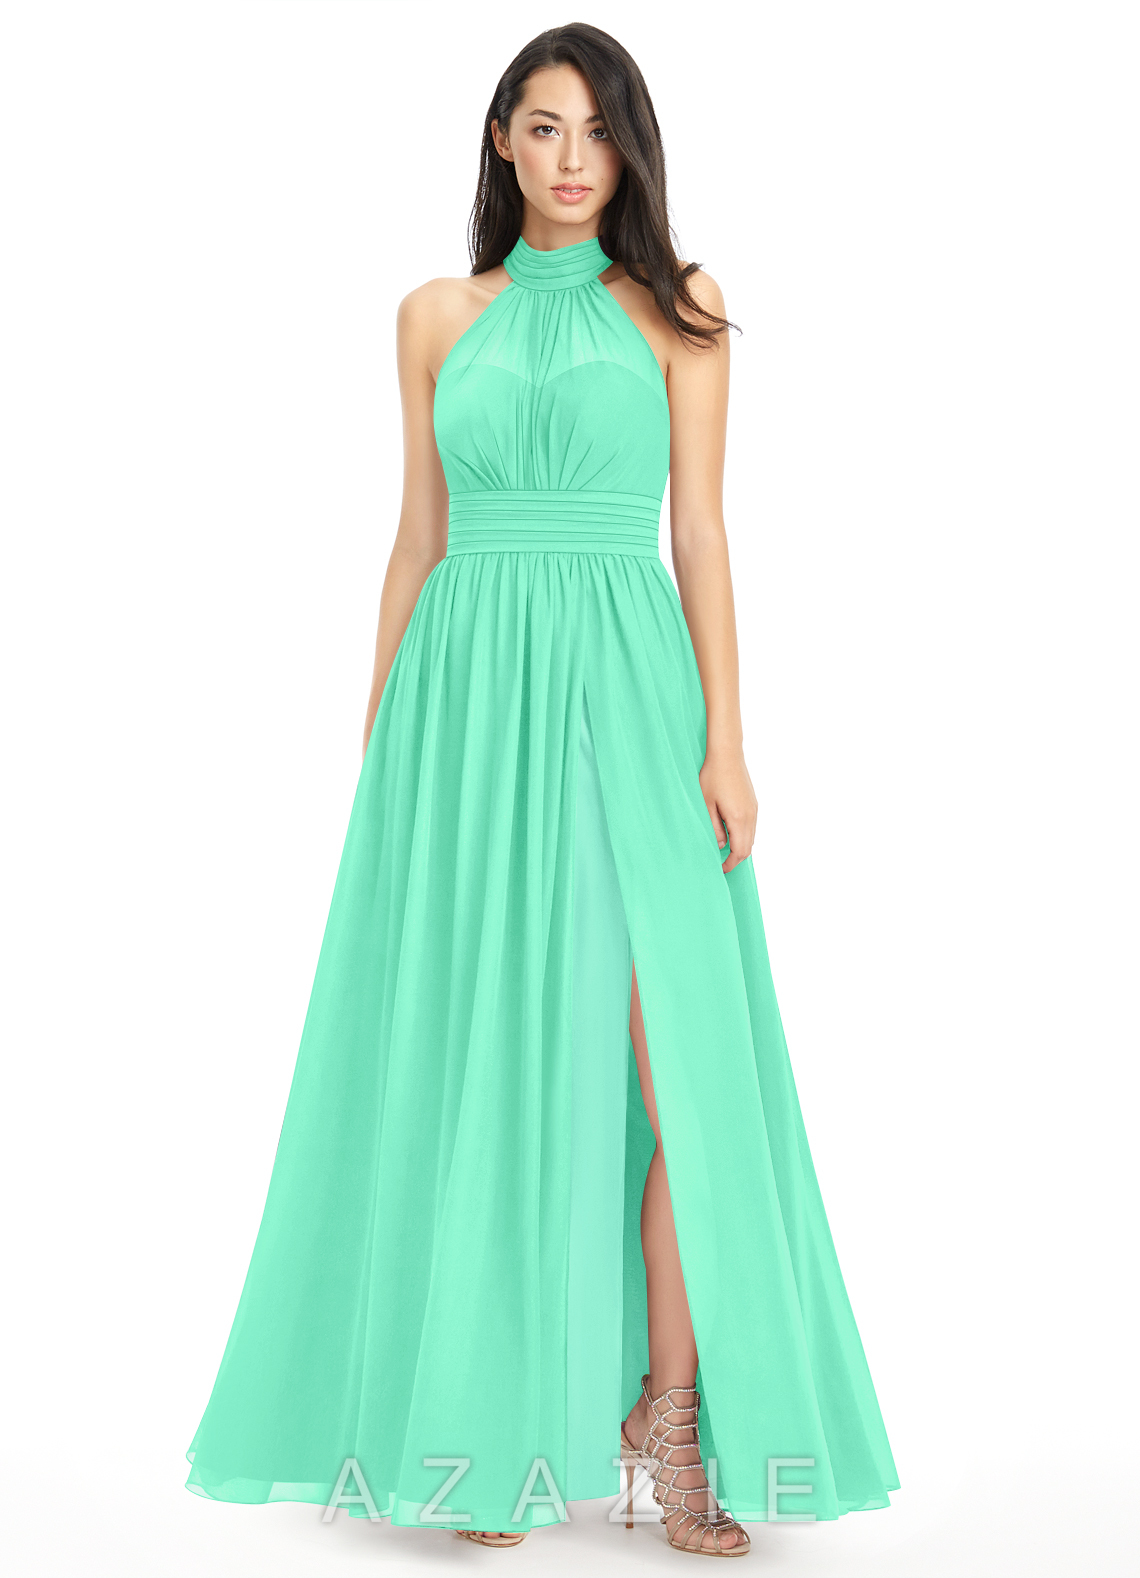 Turquoise bridesmaid dresses turquoise gowns azazie 64 colors ombrellifo Choice Image